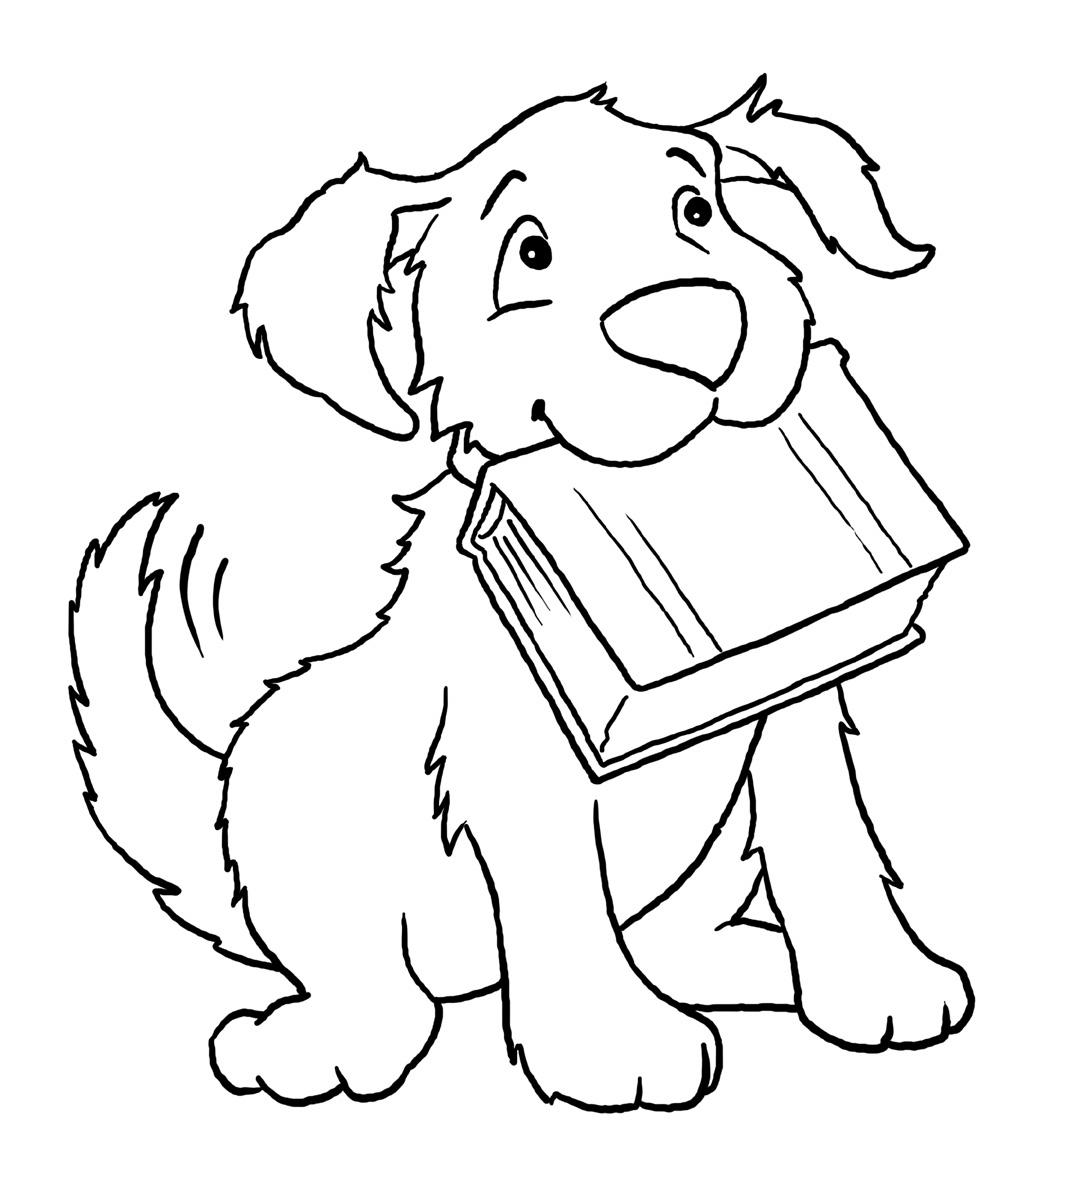 Dog Coloring Page 1